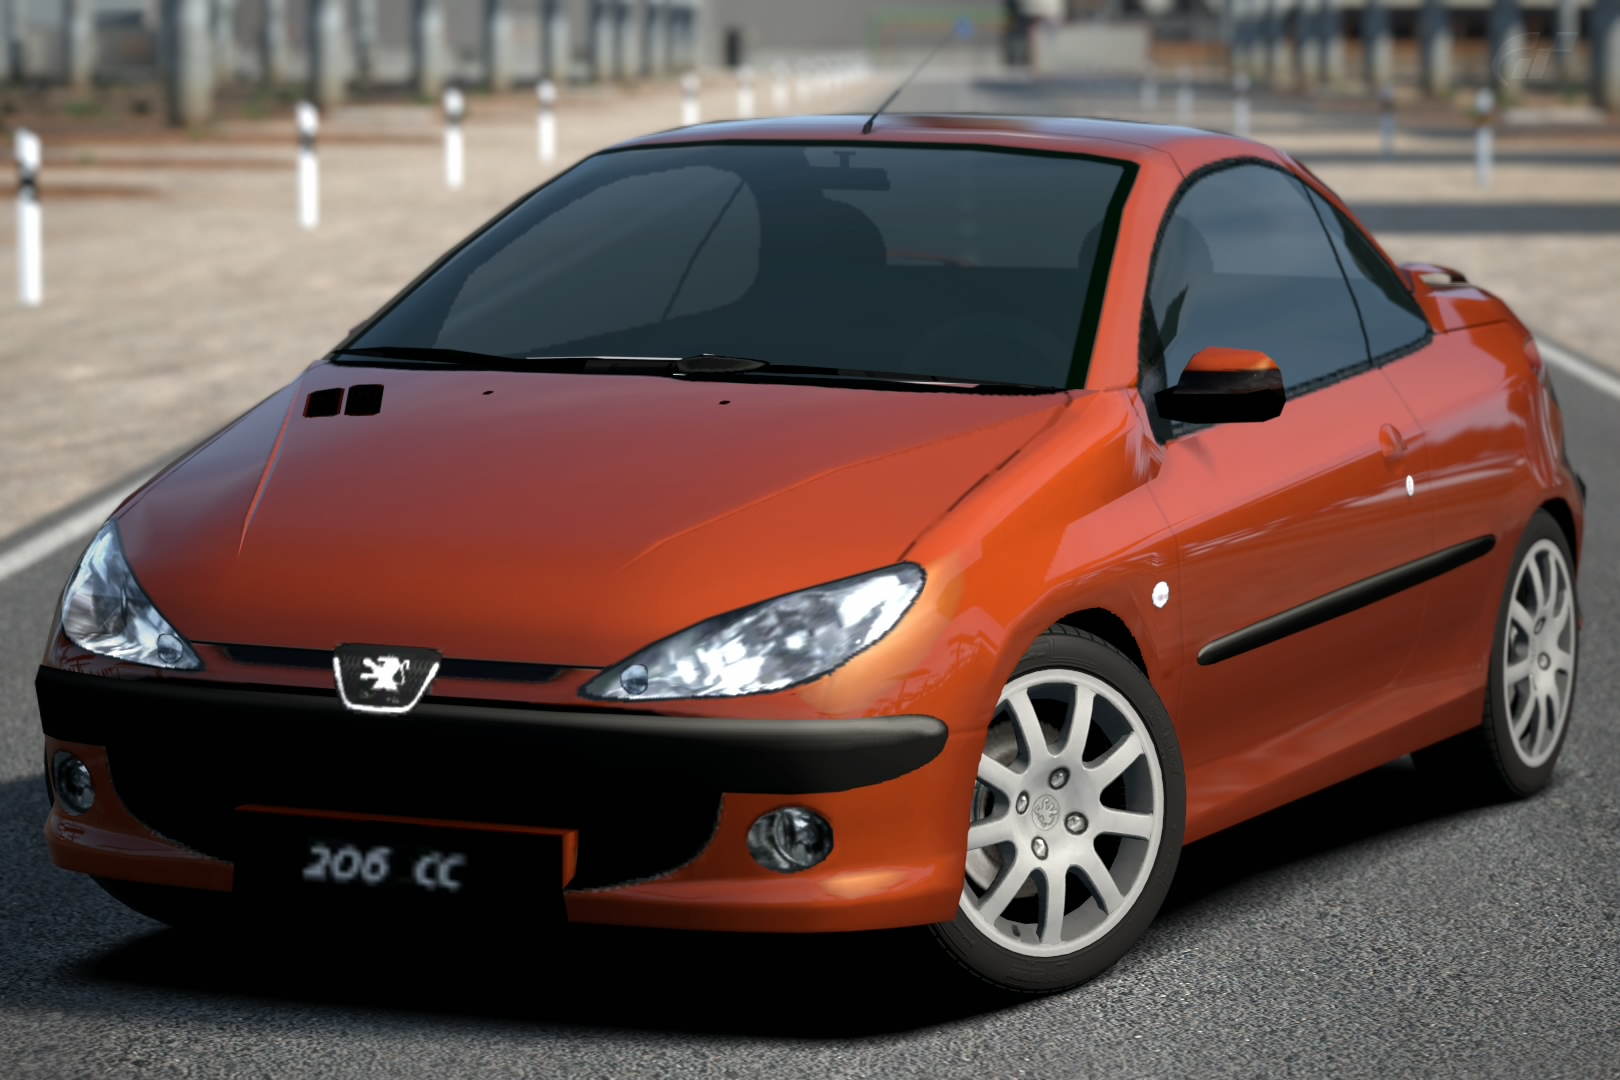 peugeot 206 cc 39 01 gran turismo wiki fandom powered by. Black Bedroom Furniture Sets. Home Design Ideas